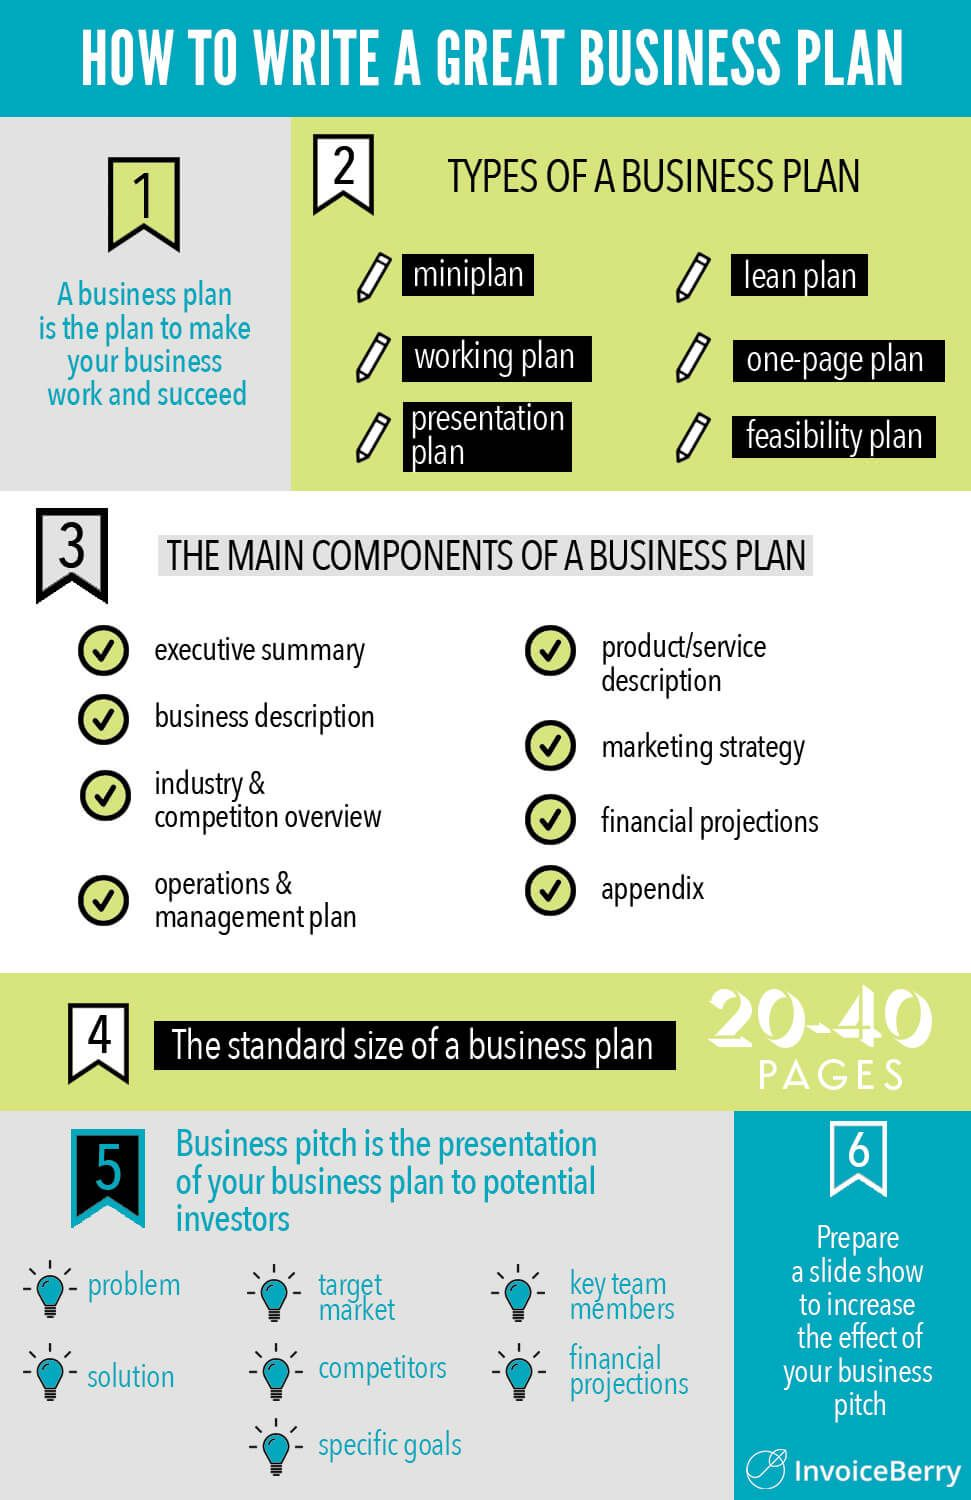 InvoiceBerry's business plan infographic Business